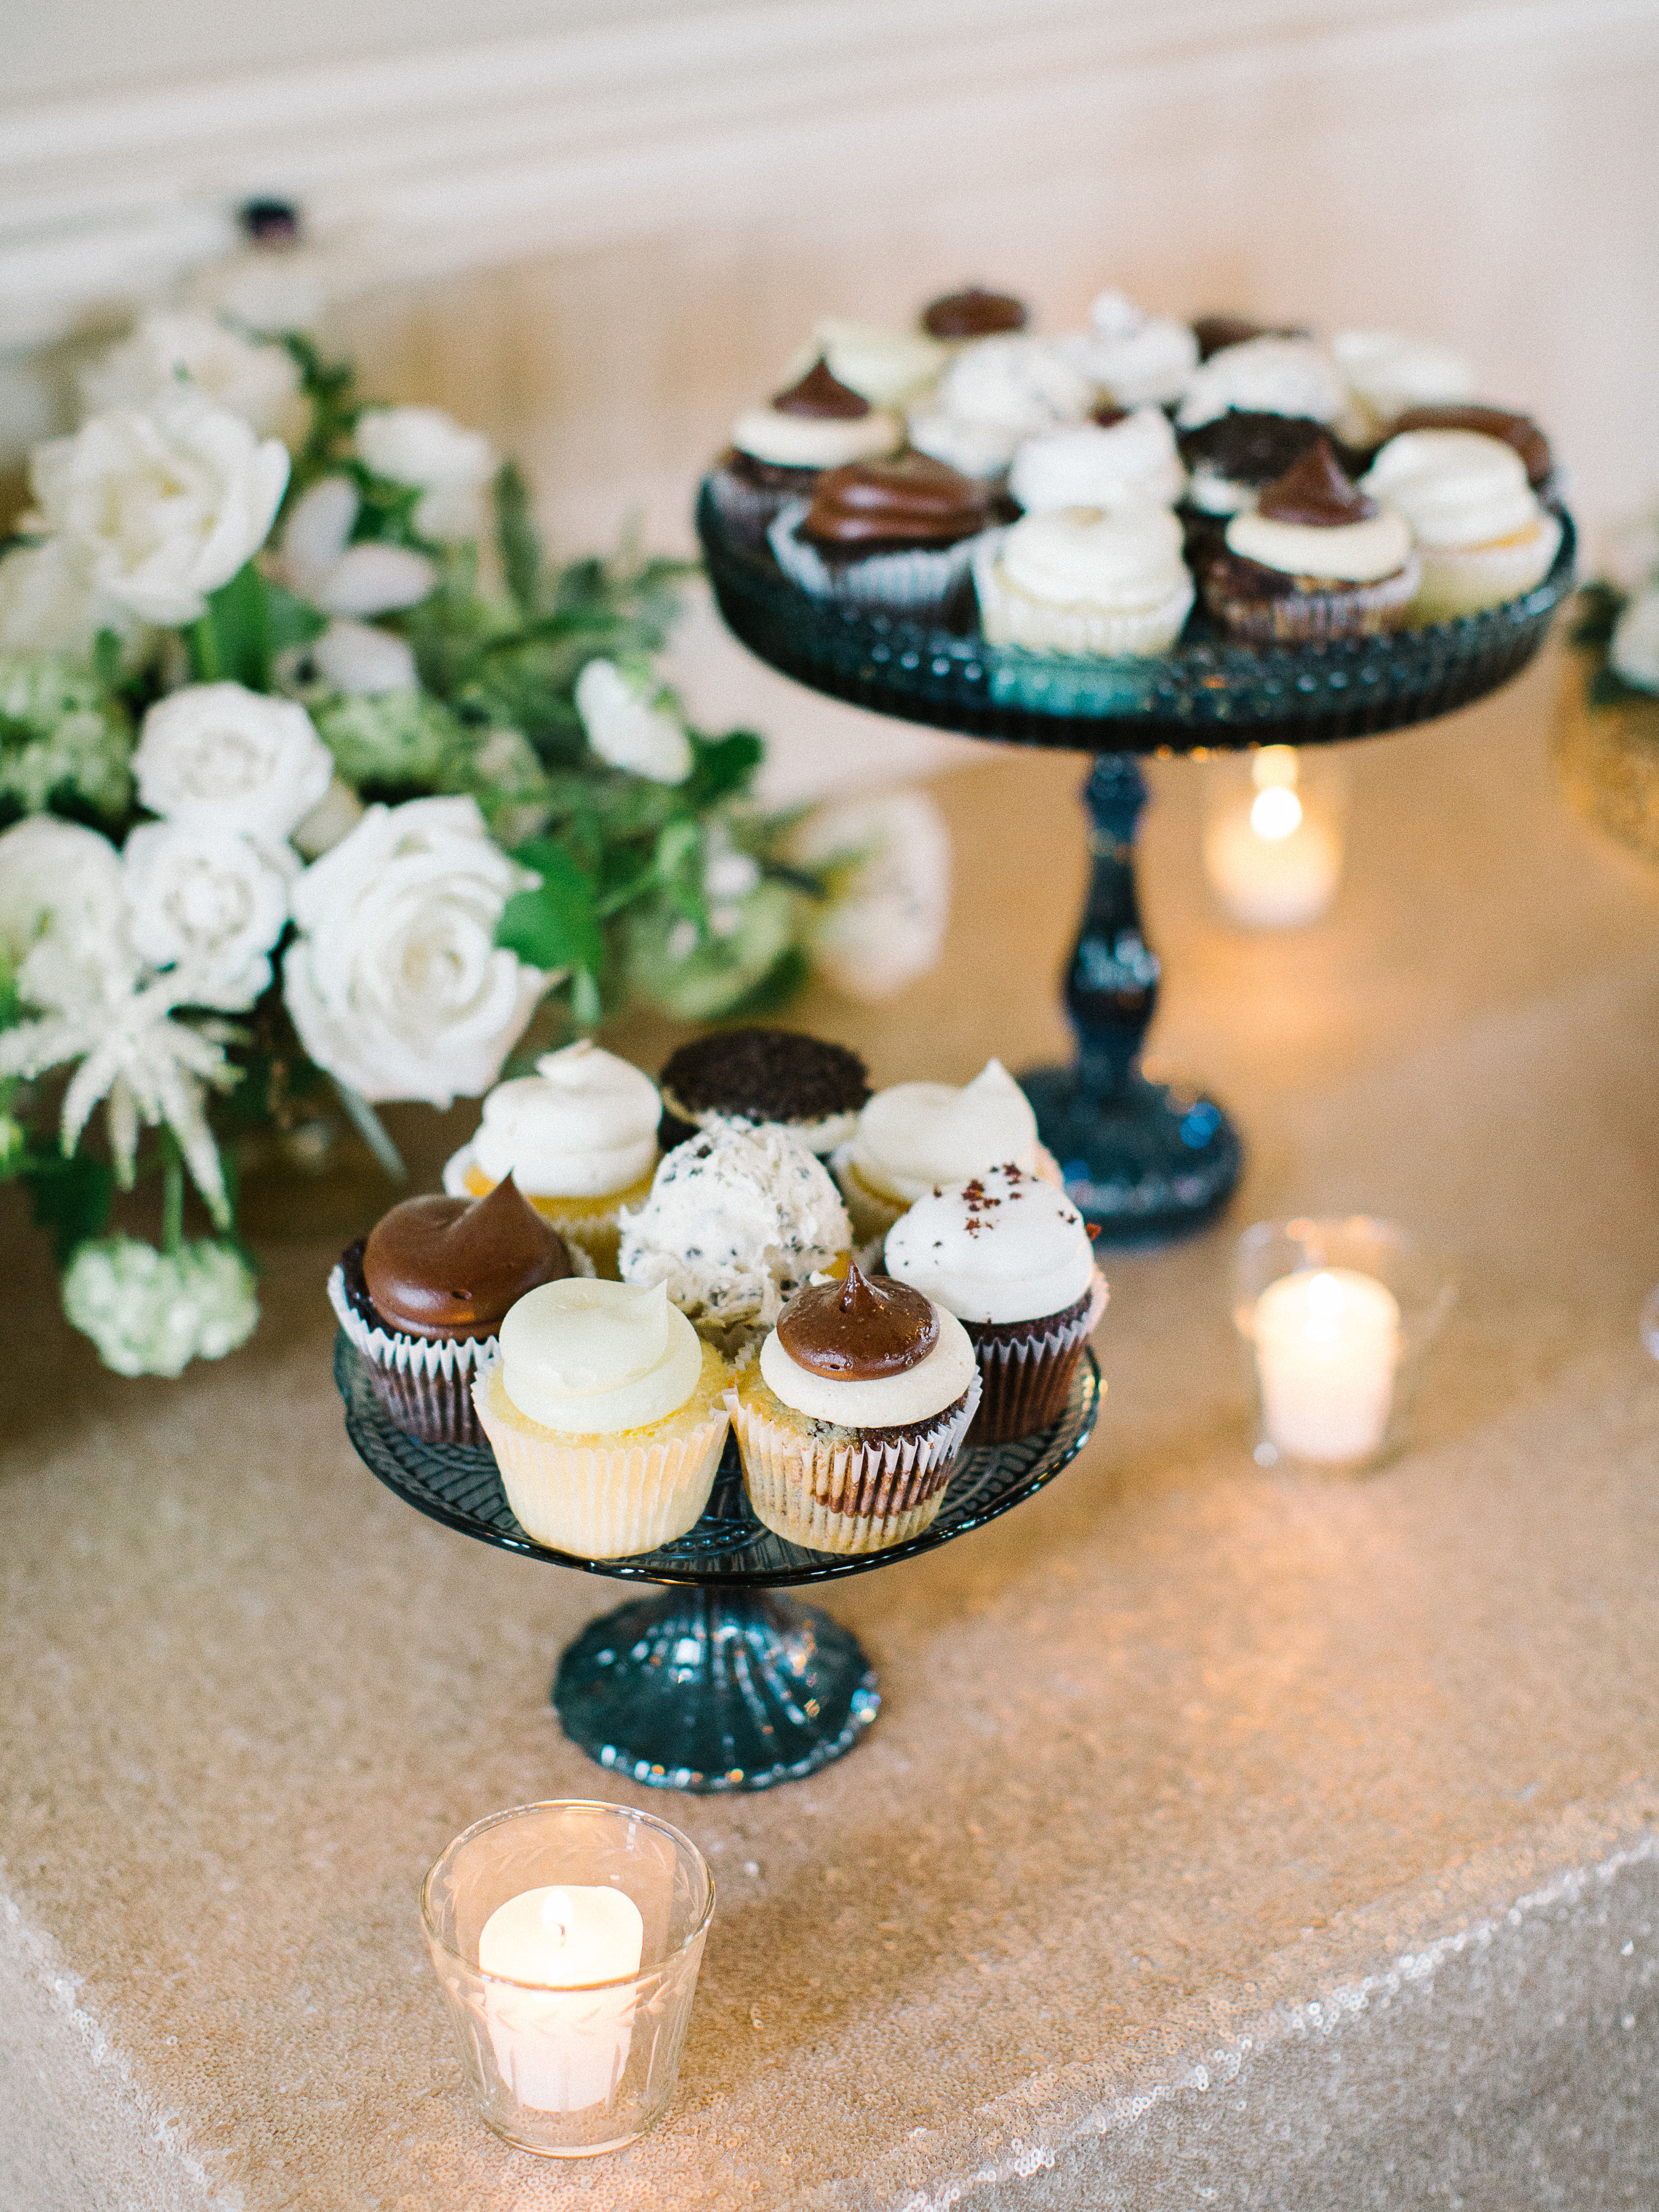 chocolate and vanilla frosted cupcakes on a stand